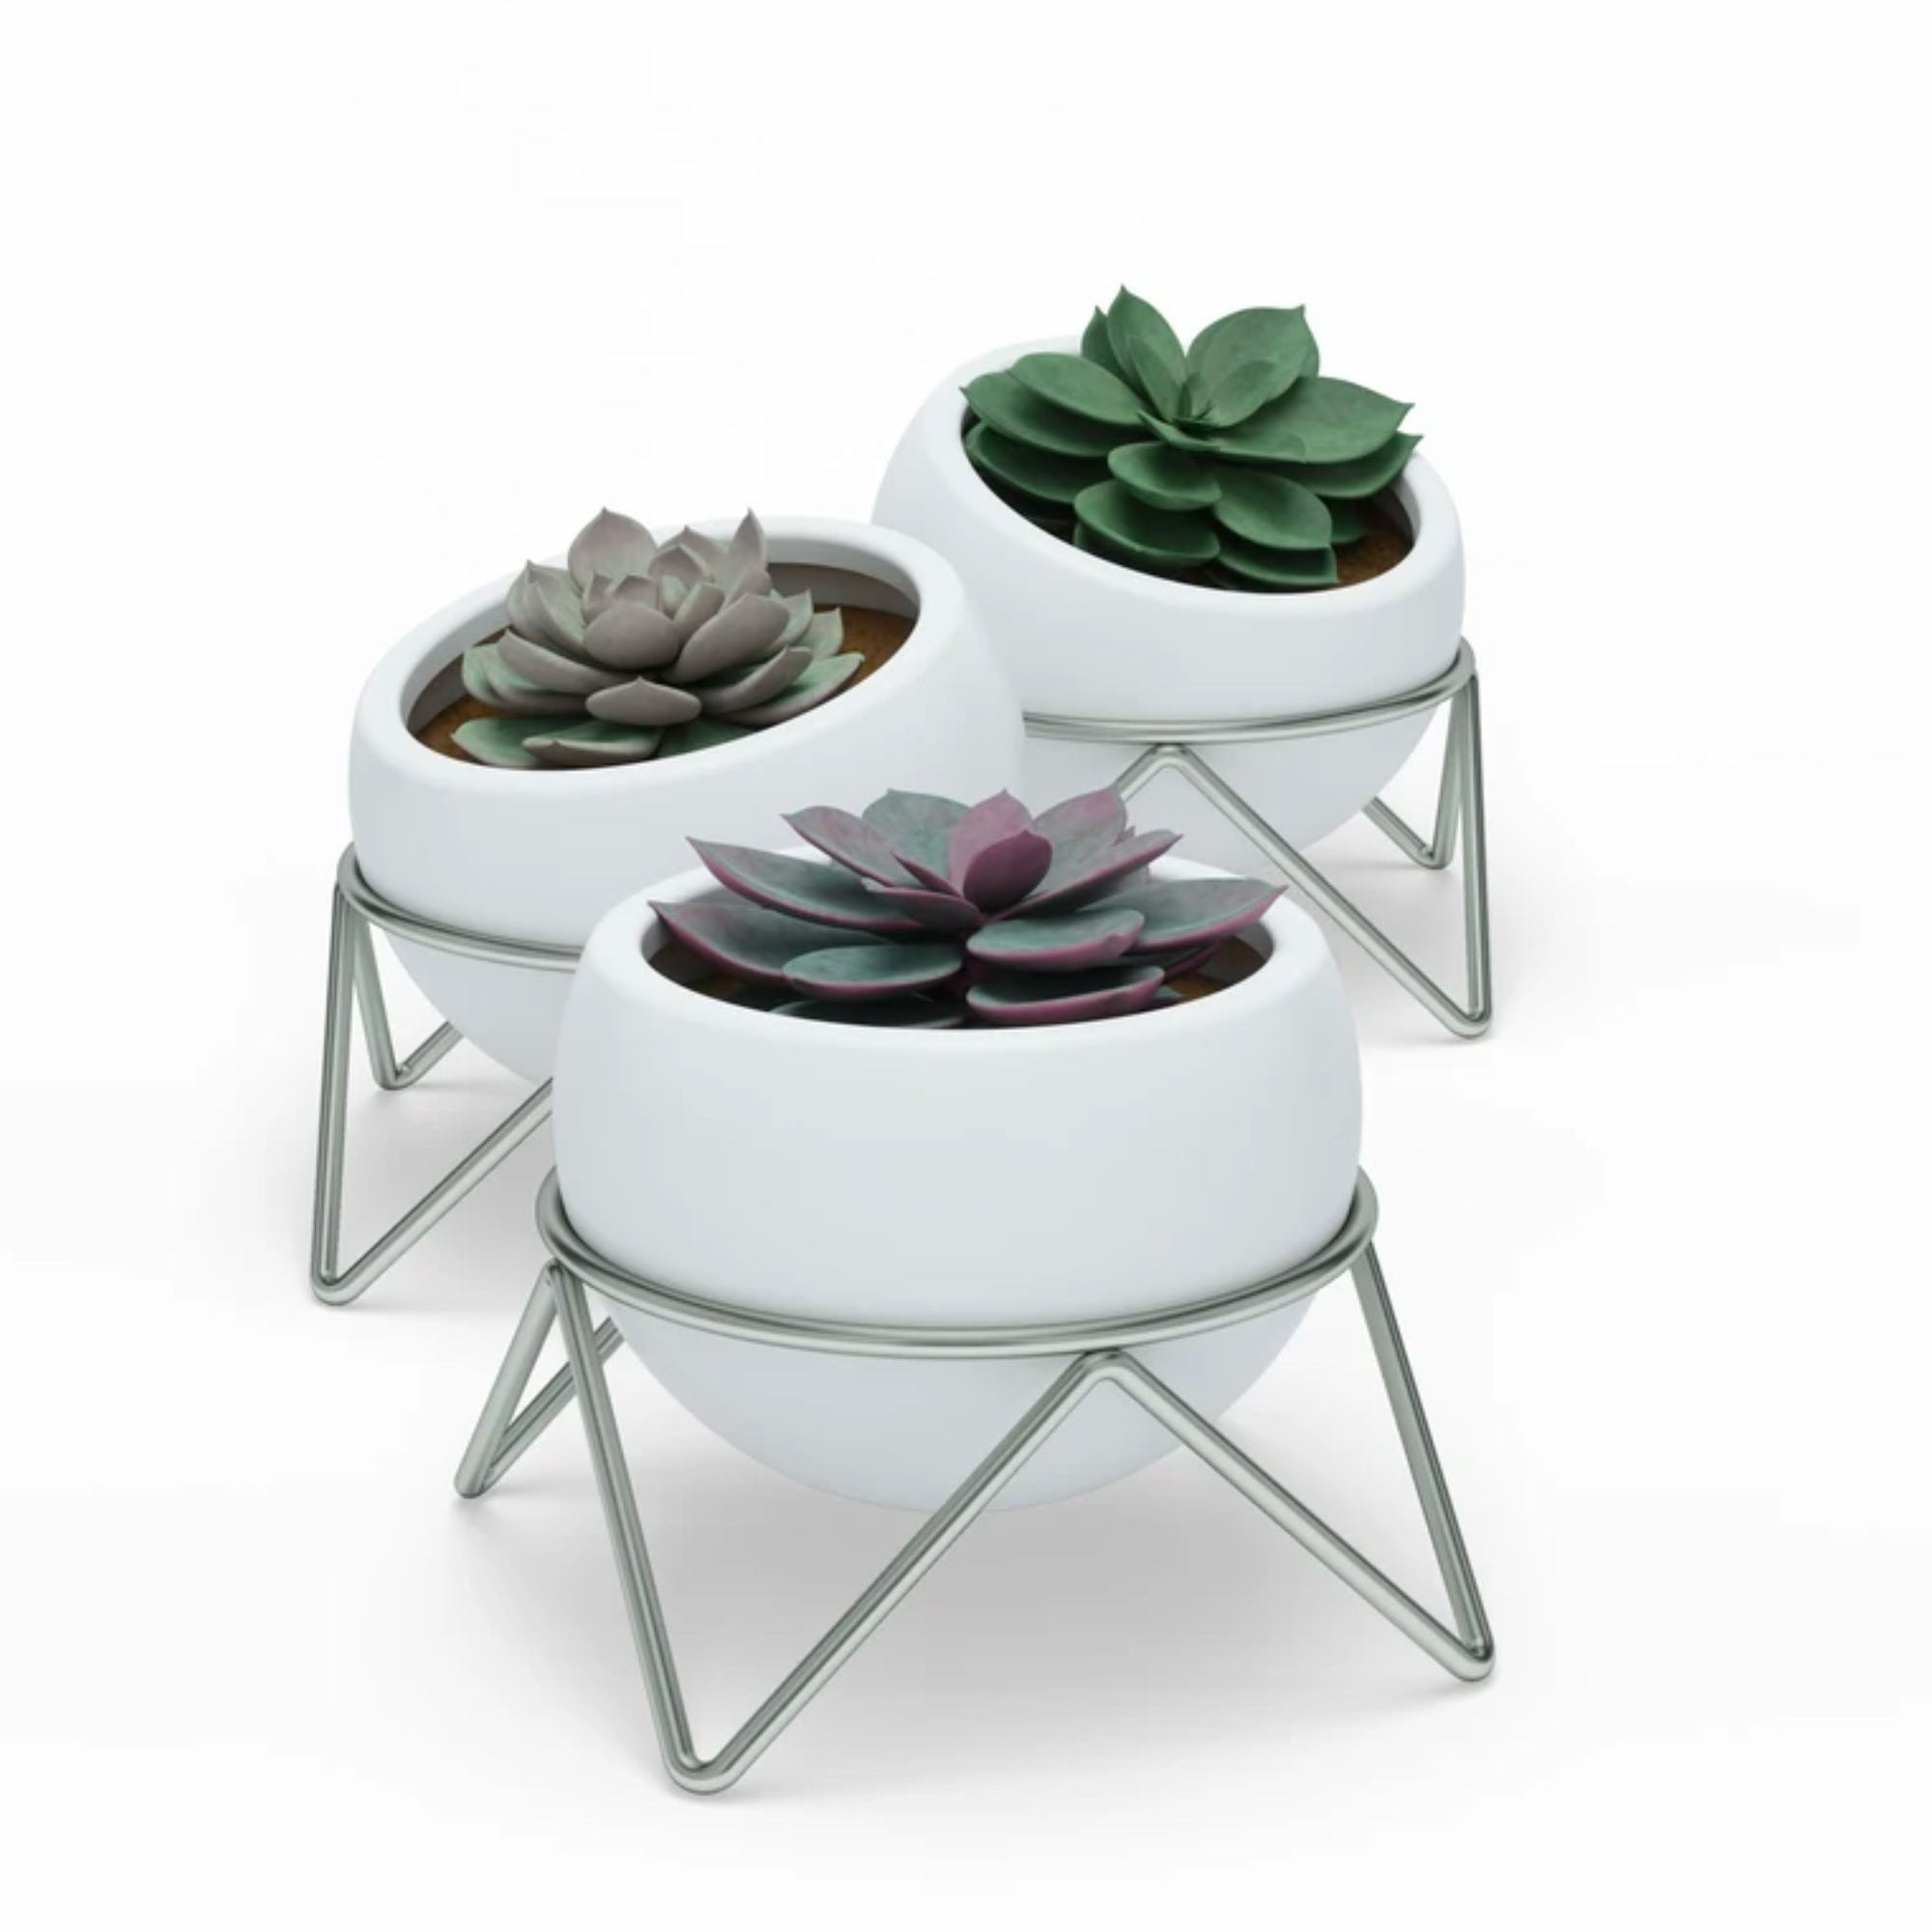 Umbra Potsy 3-pack planter, white - nickel